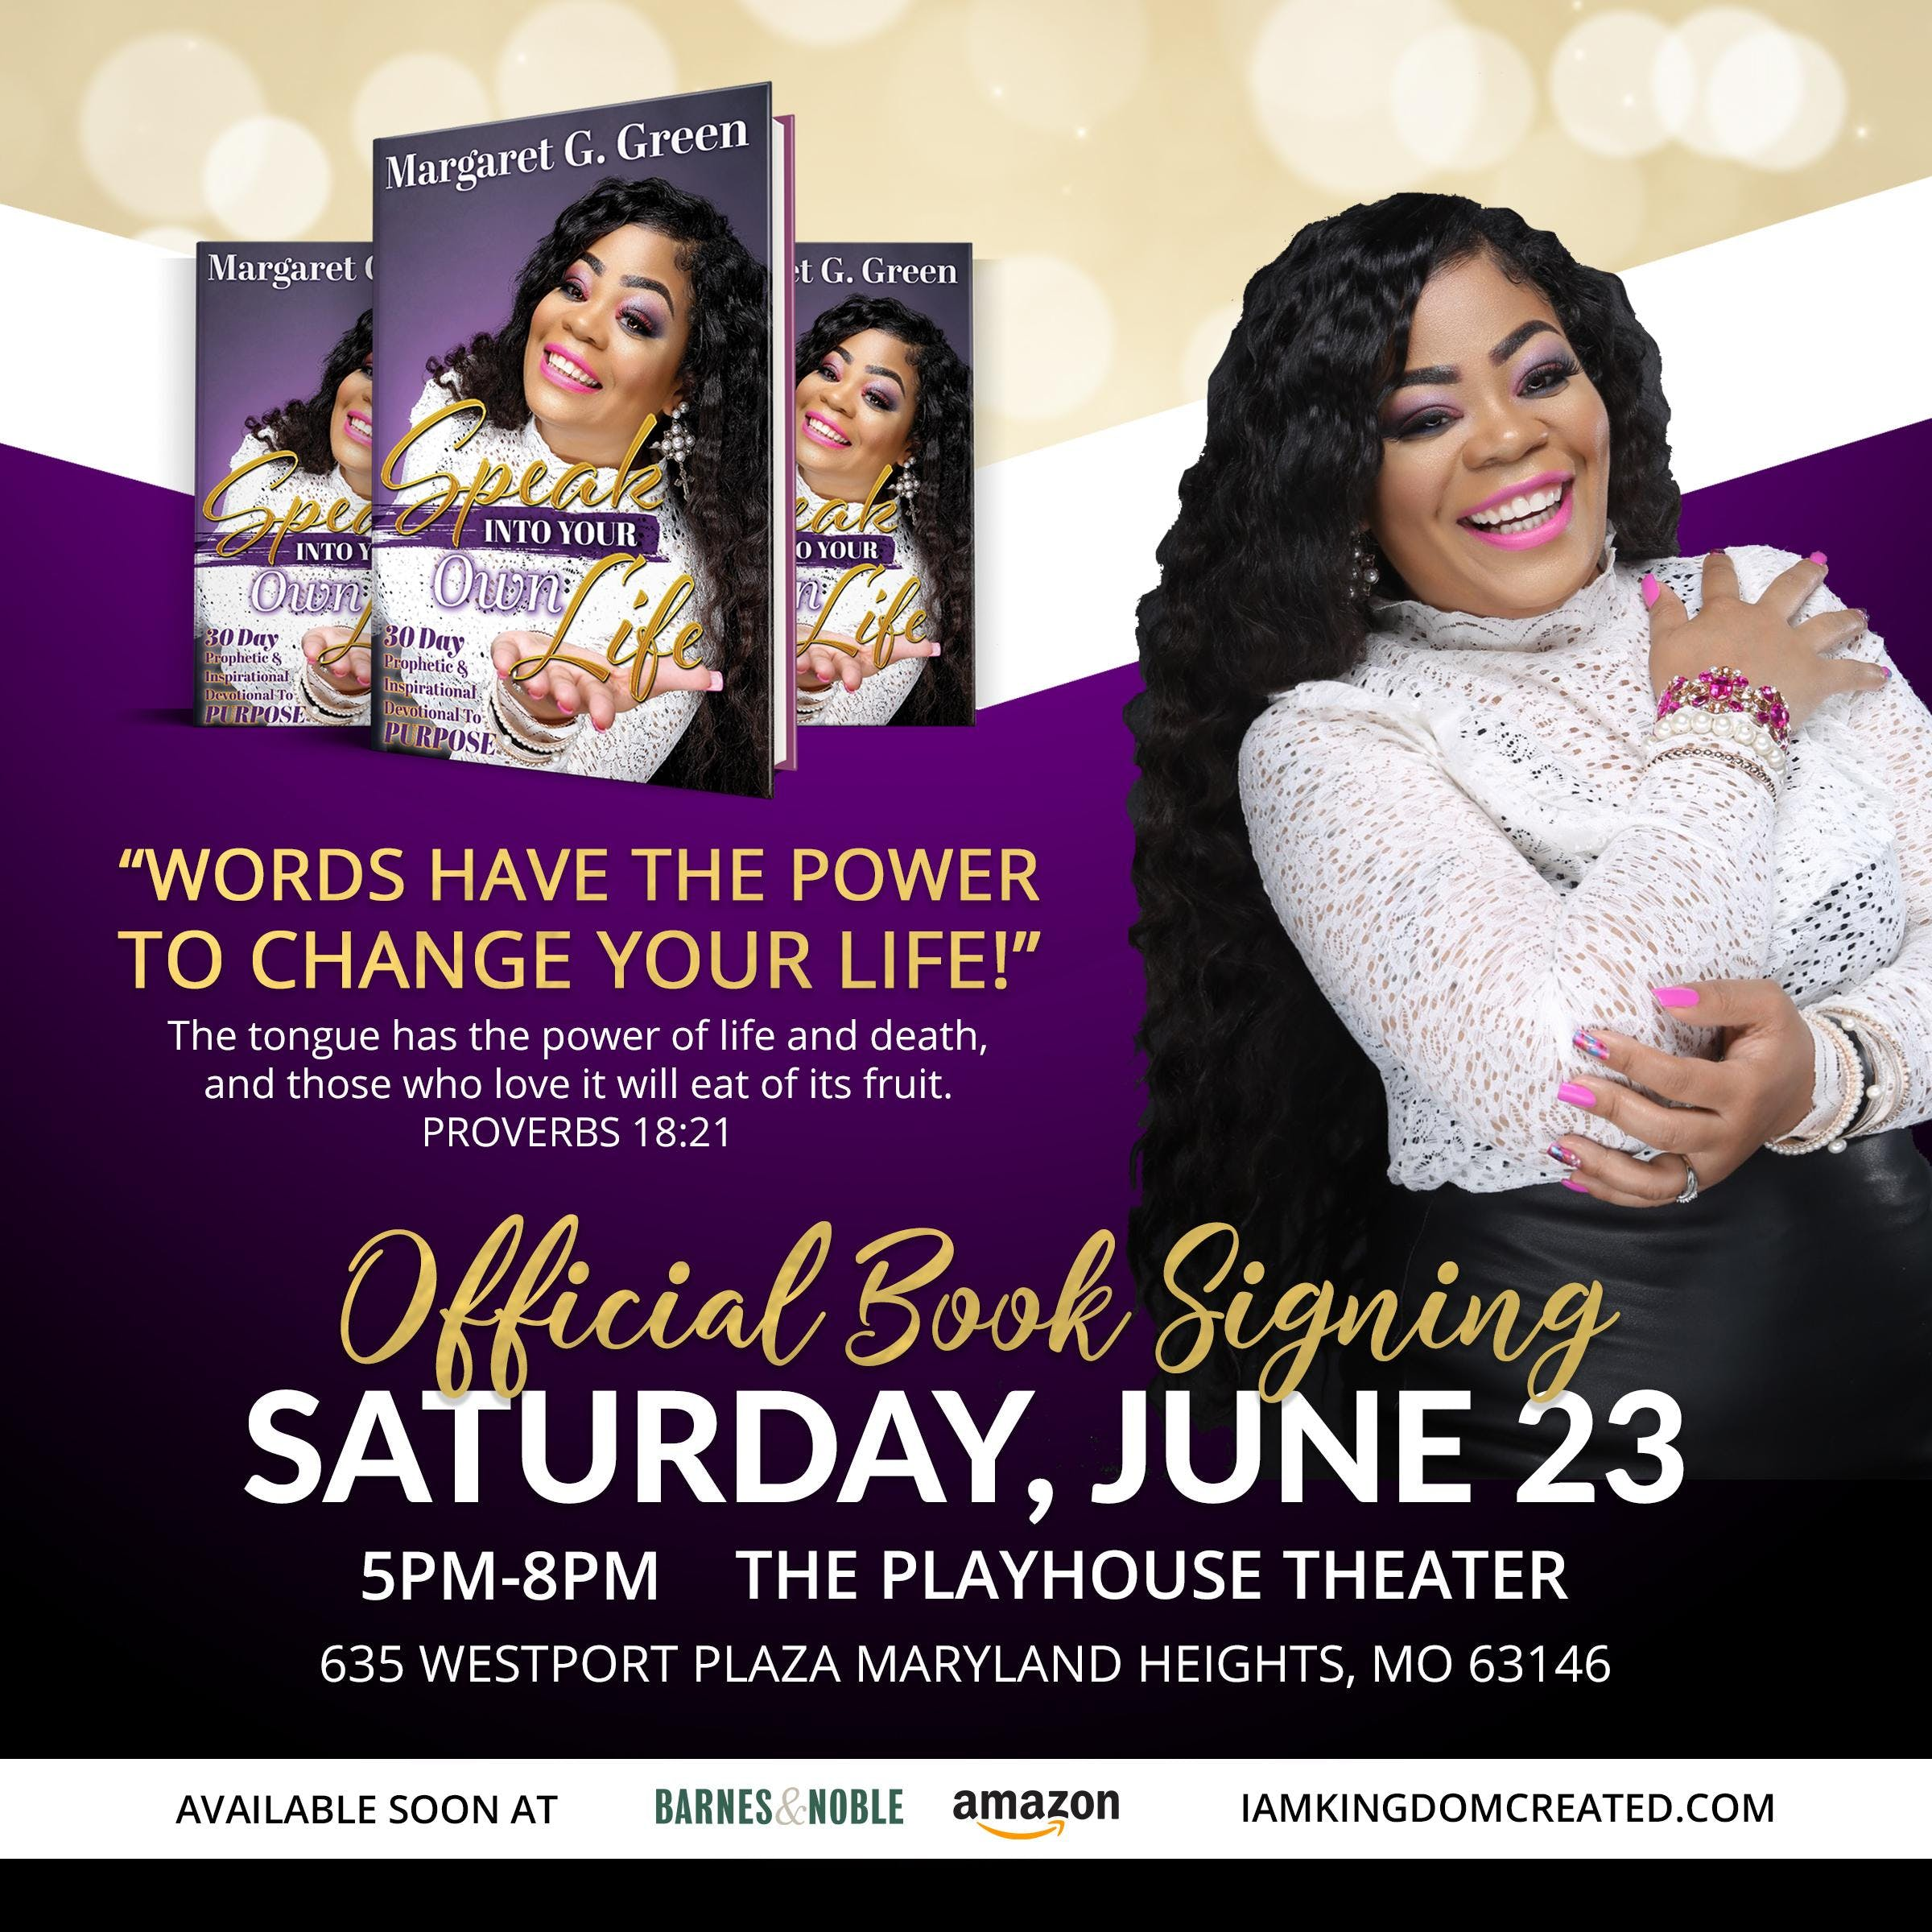 Speak Into Your Own Life Book Release Event